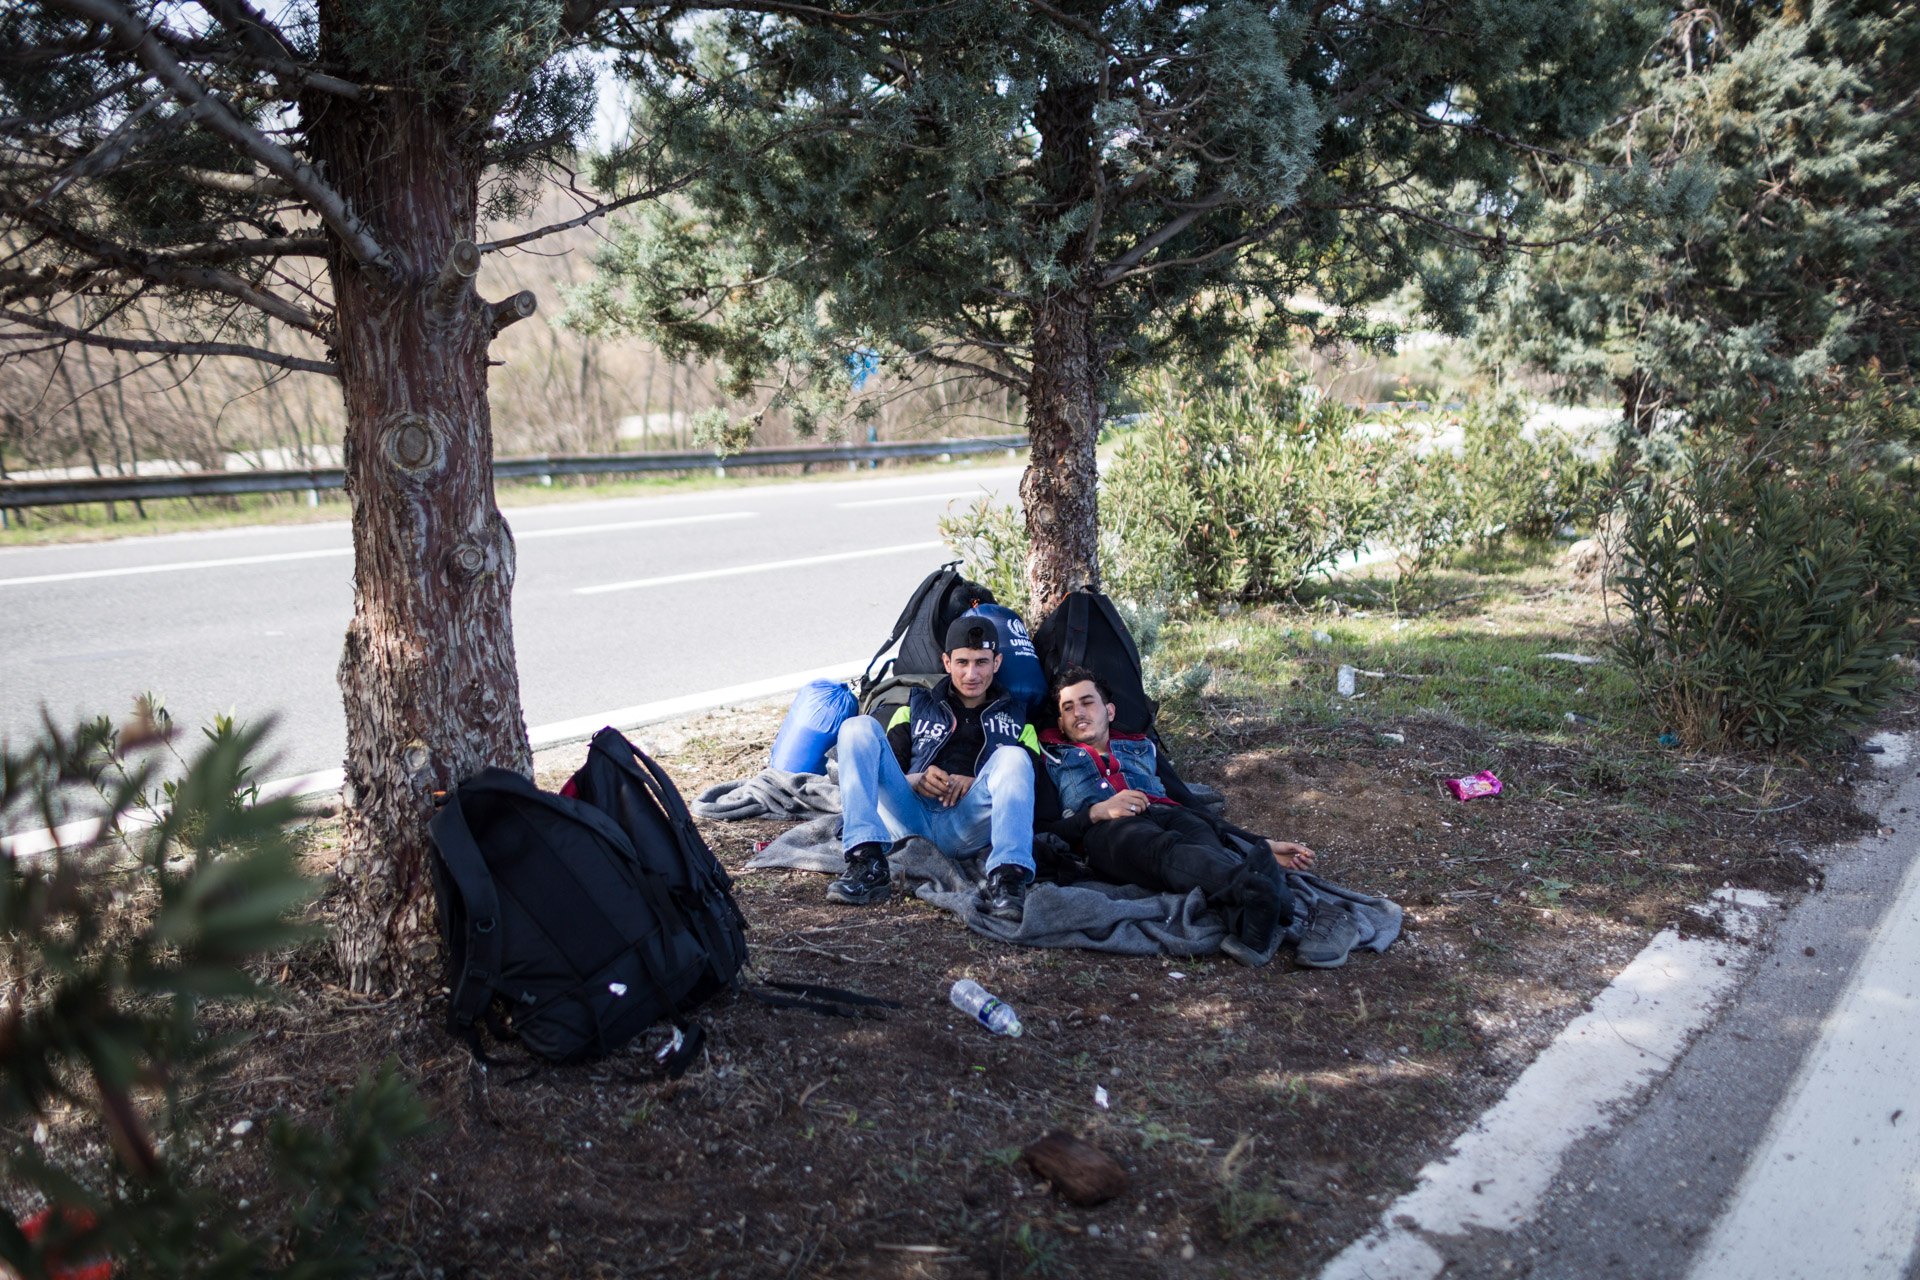 Ahmad and Mohammad, two close friends of the al-Turki family, rest under a tree on the freeway to Idomeni.